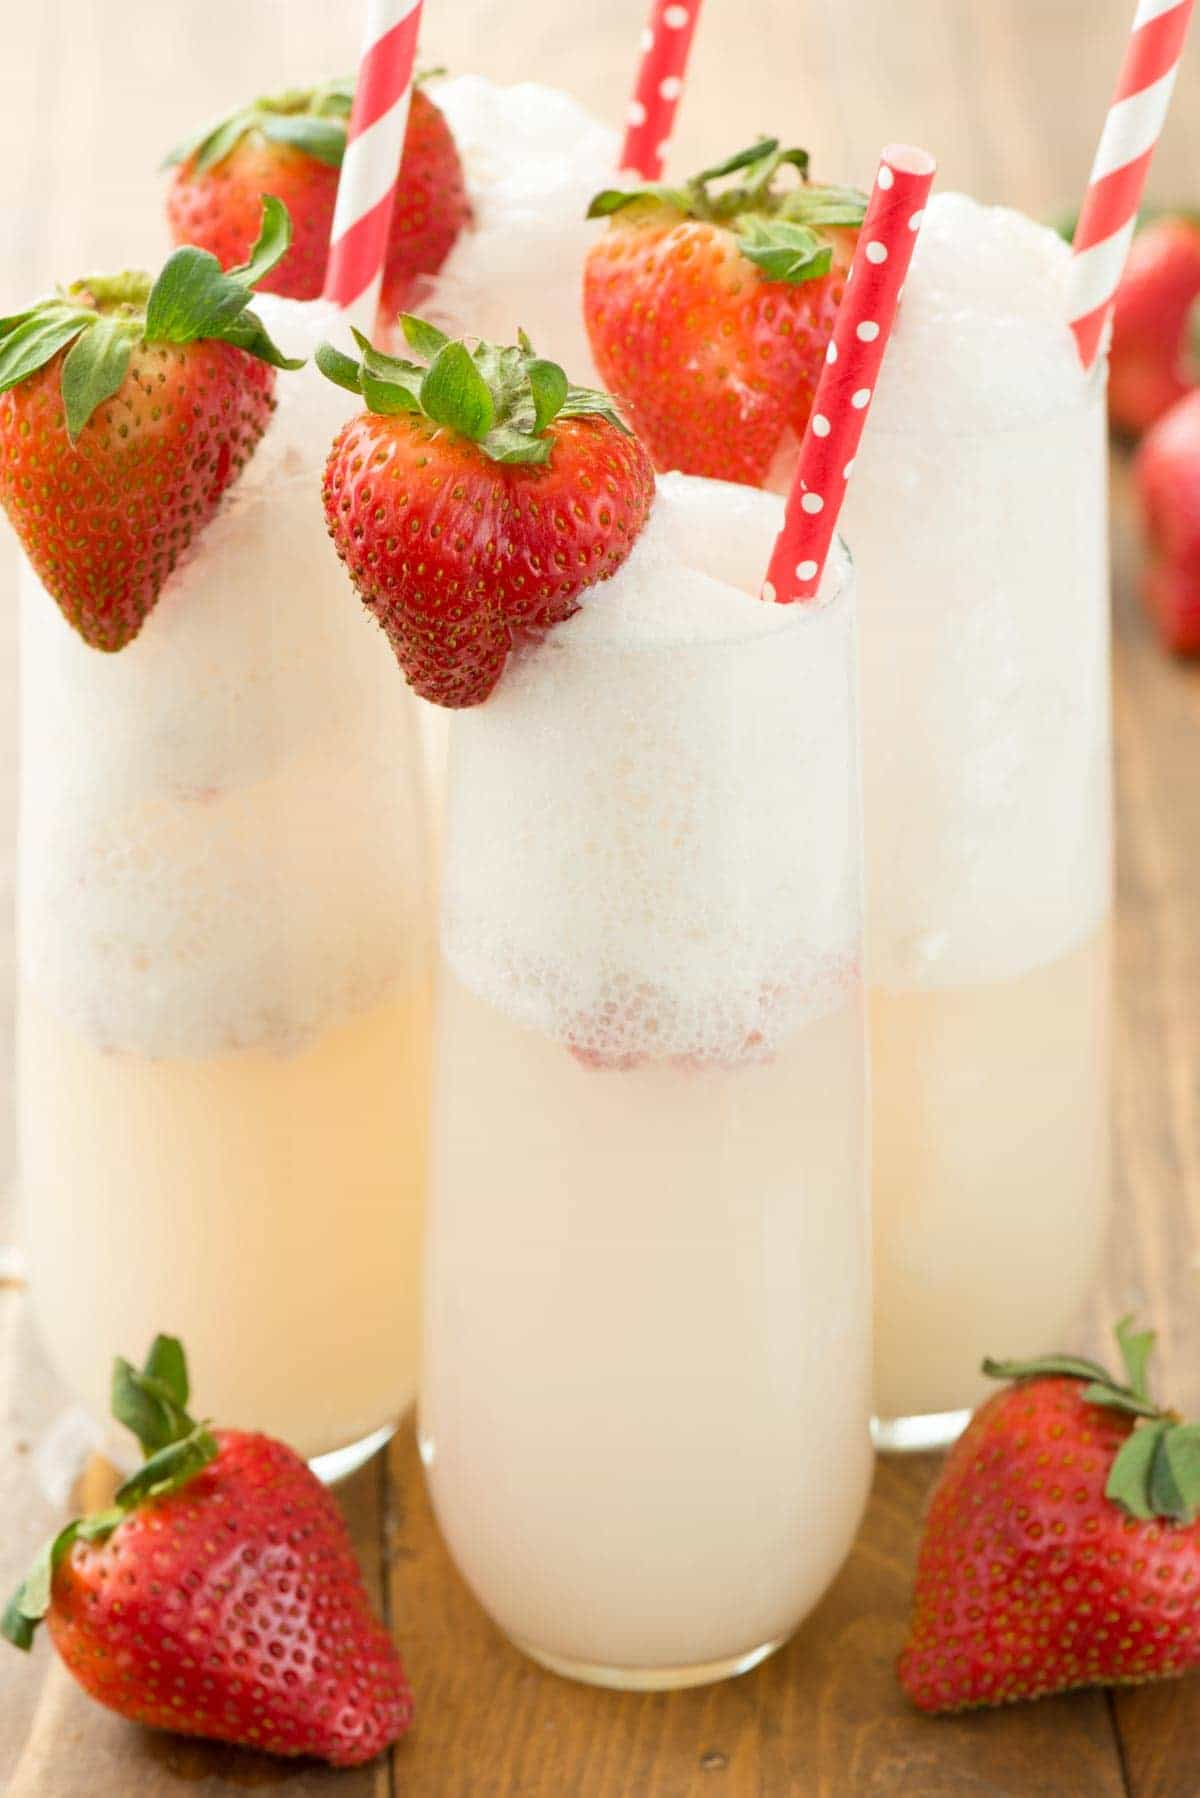 Four Strawberry Shortcake Mimosa with straws garnished with fresh strawberries.